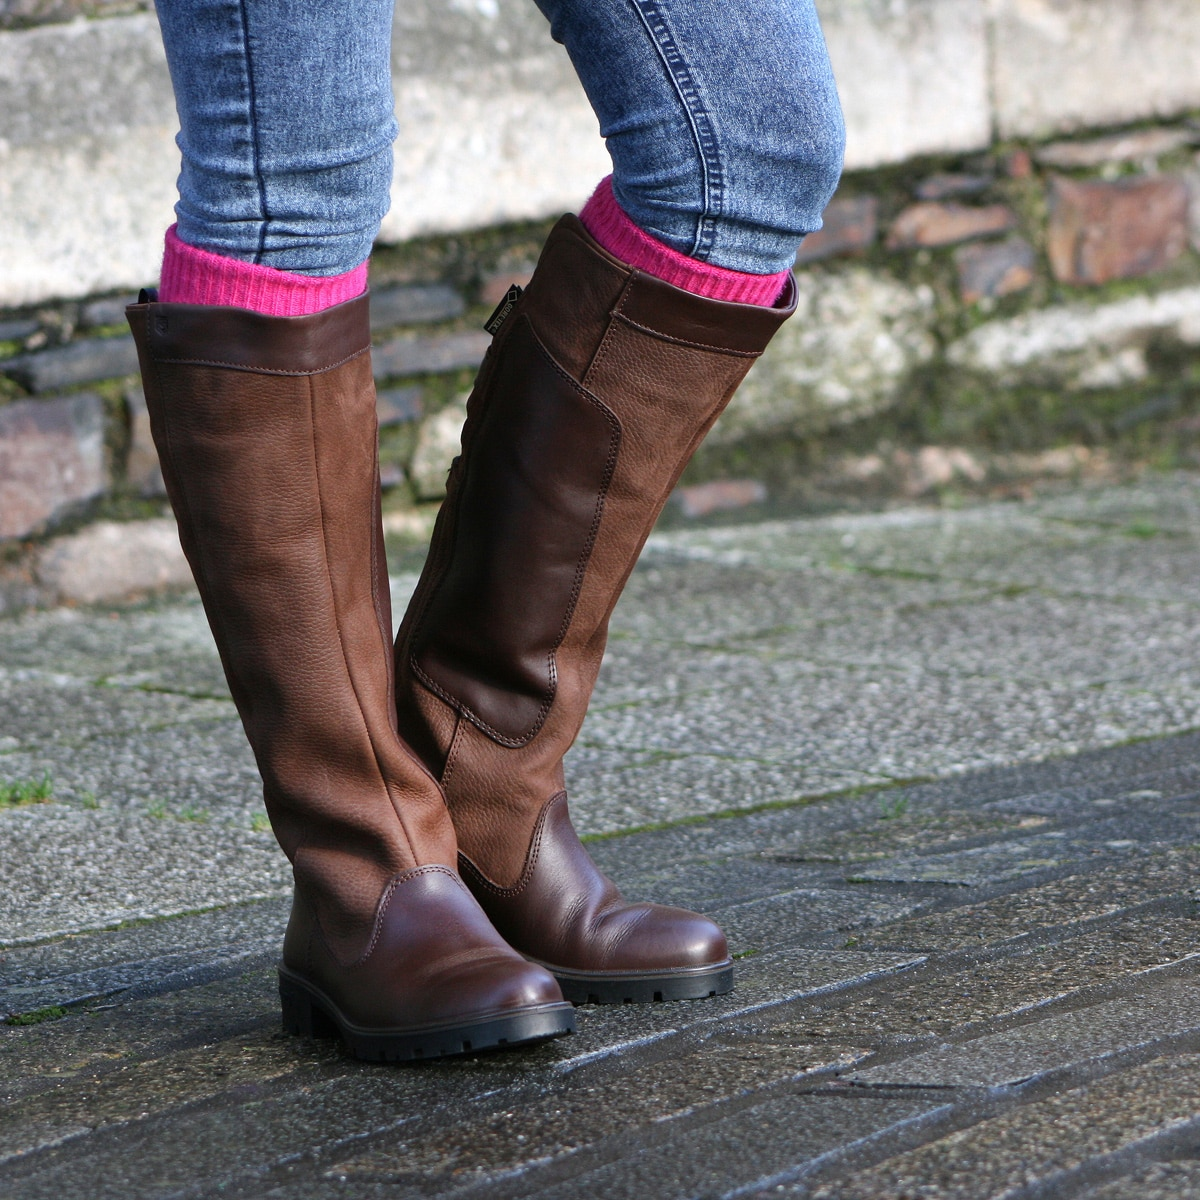 eed0f24ba4a72 Dubarry Clare Boot